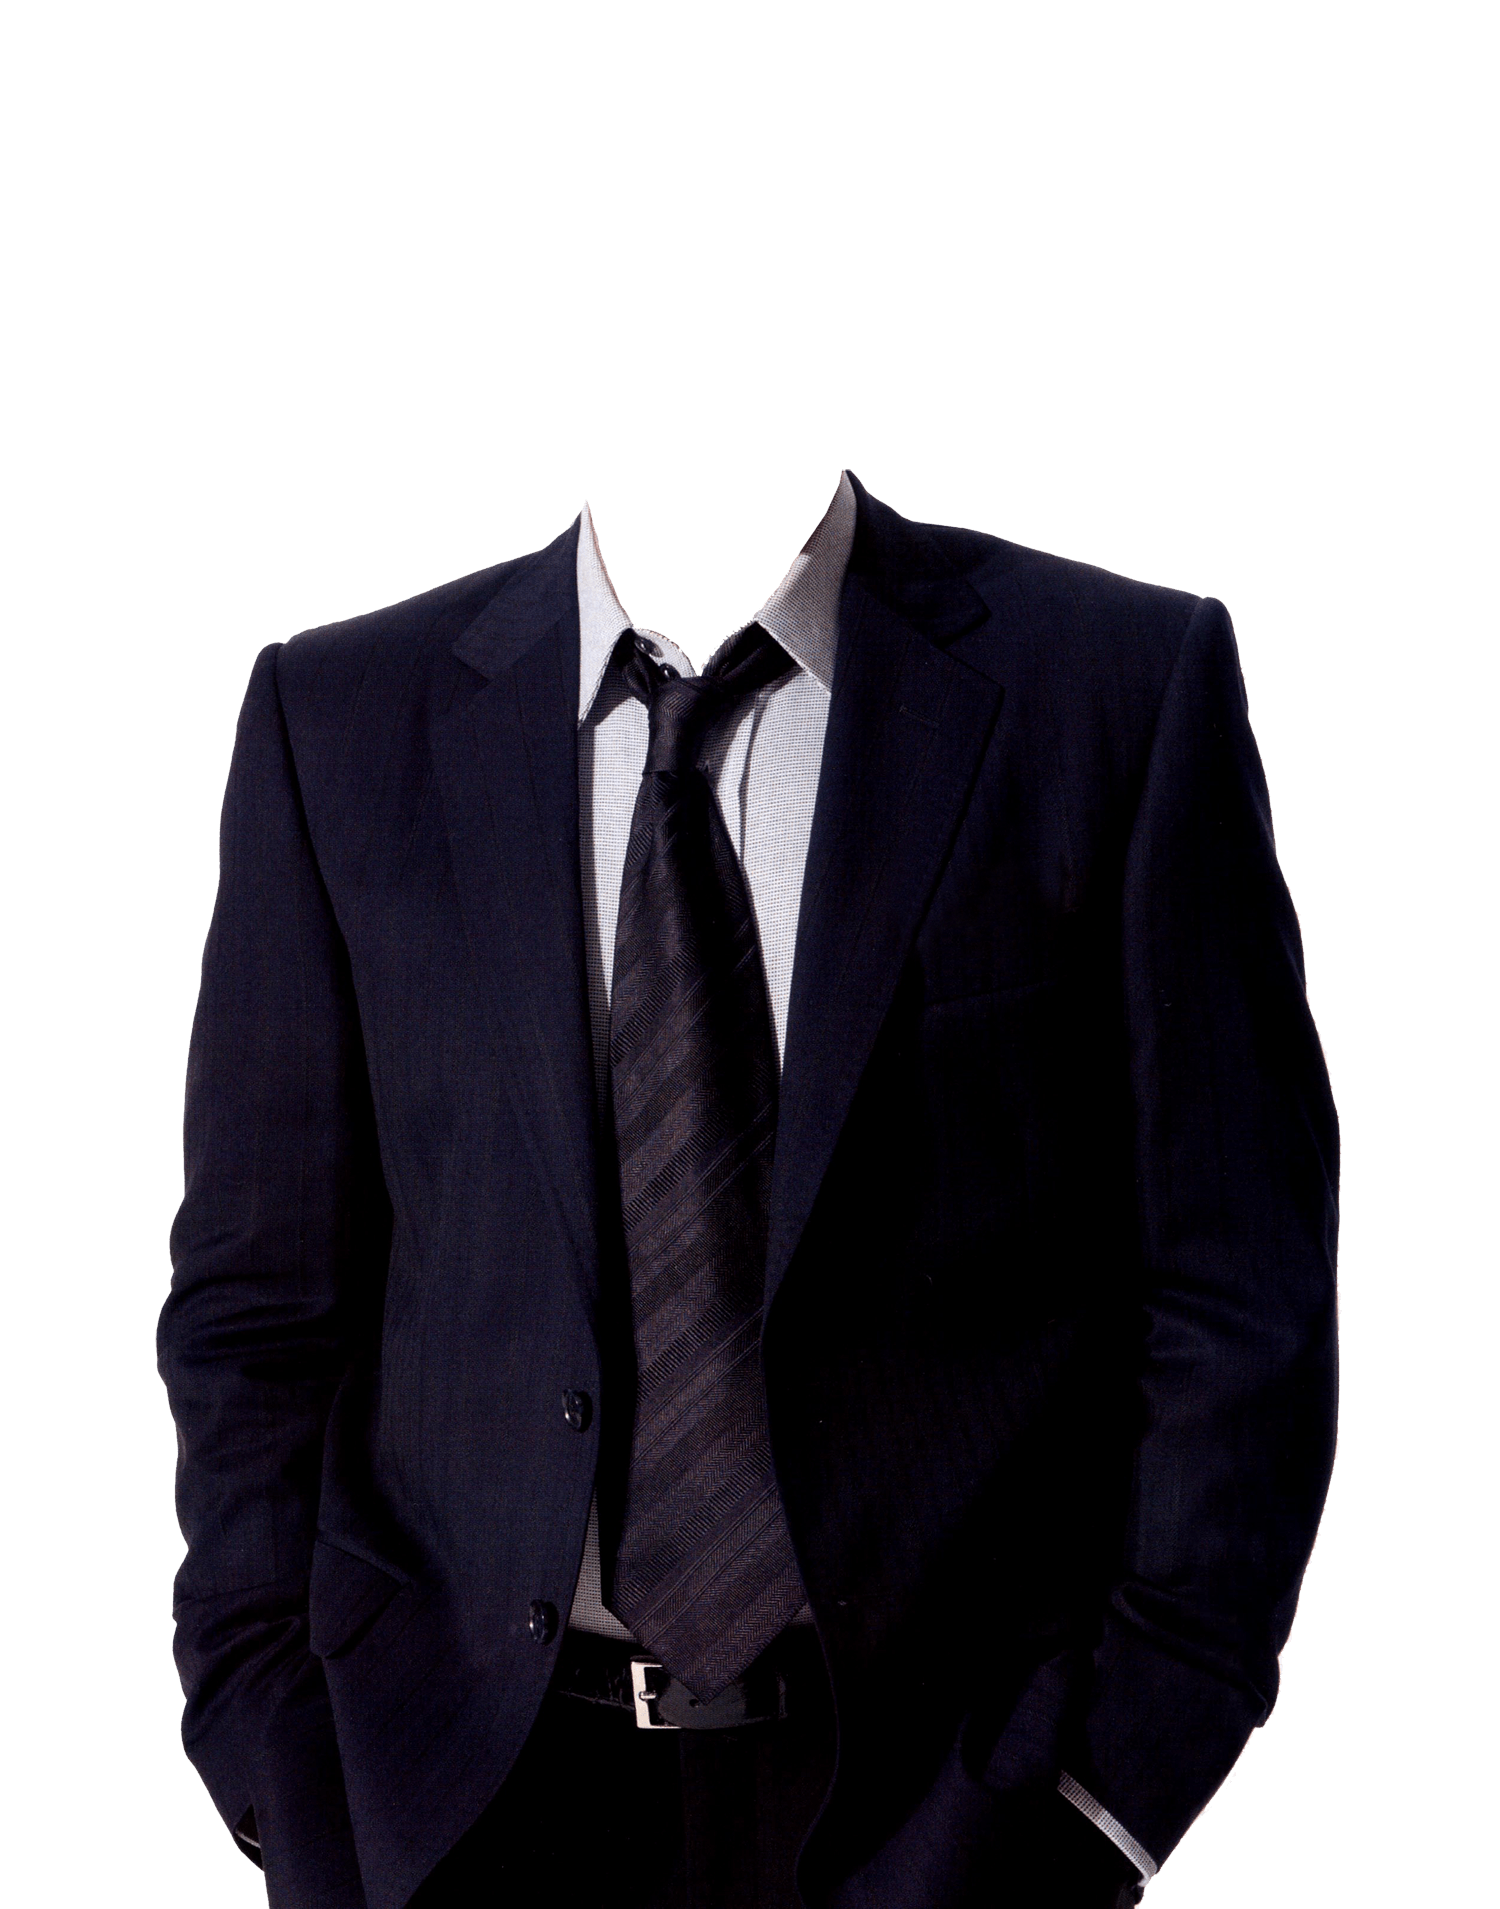 suit and tie no head transparent png stickpng